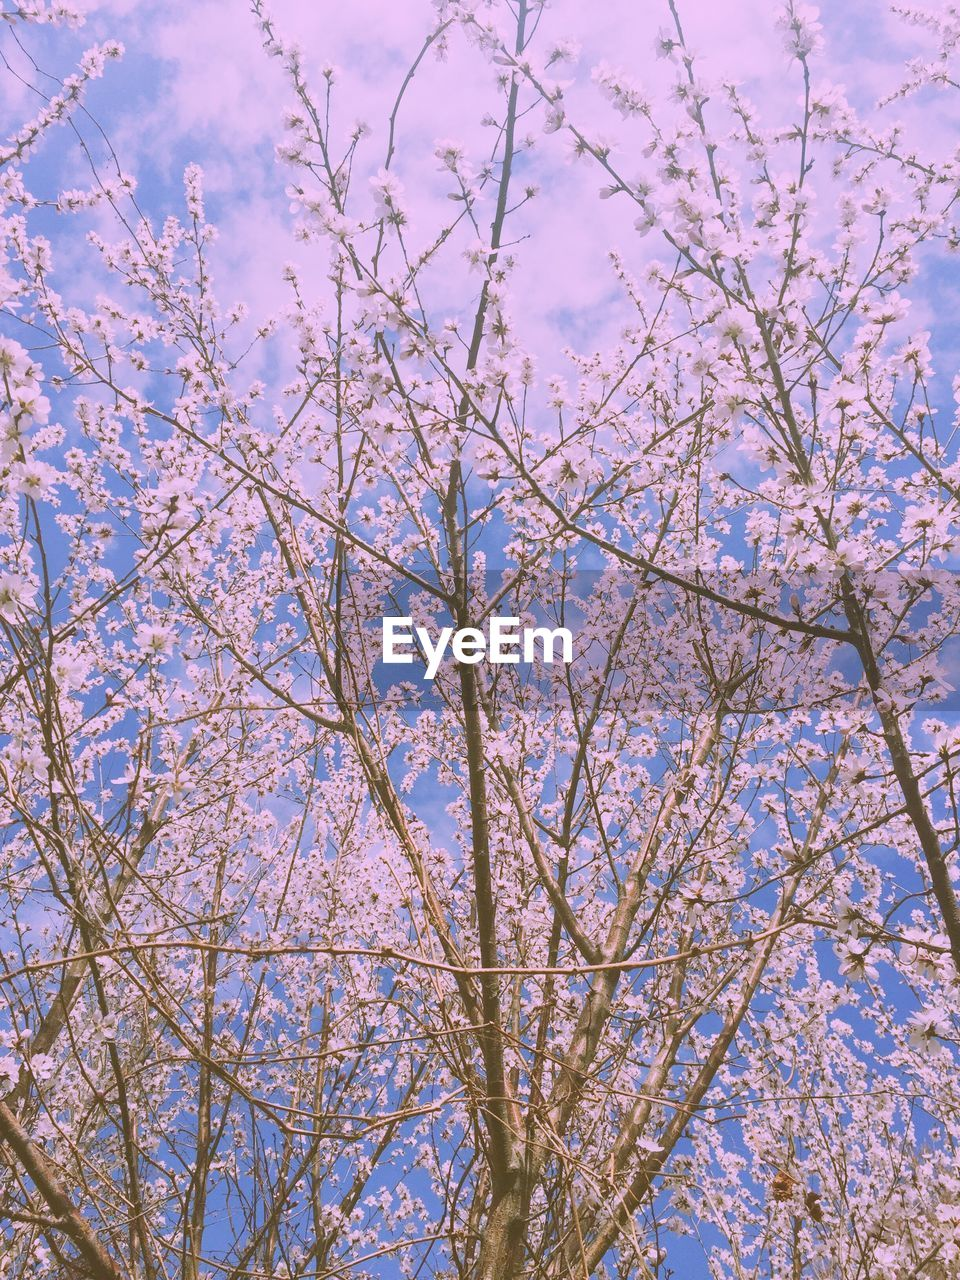 branch, flower, beauty in nature, tree, blossom, low angle view, nature, springtime, growth, fragility, botany, freshness, no people, day, backgrounds, sky, outdoors, pink color, full frame, scenics, close-up, flower head